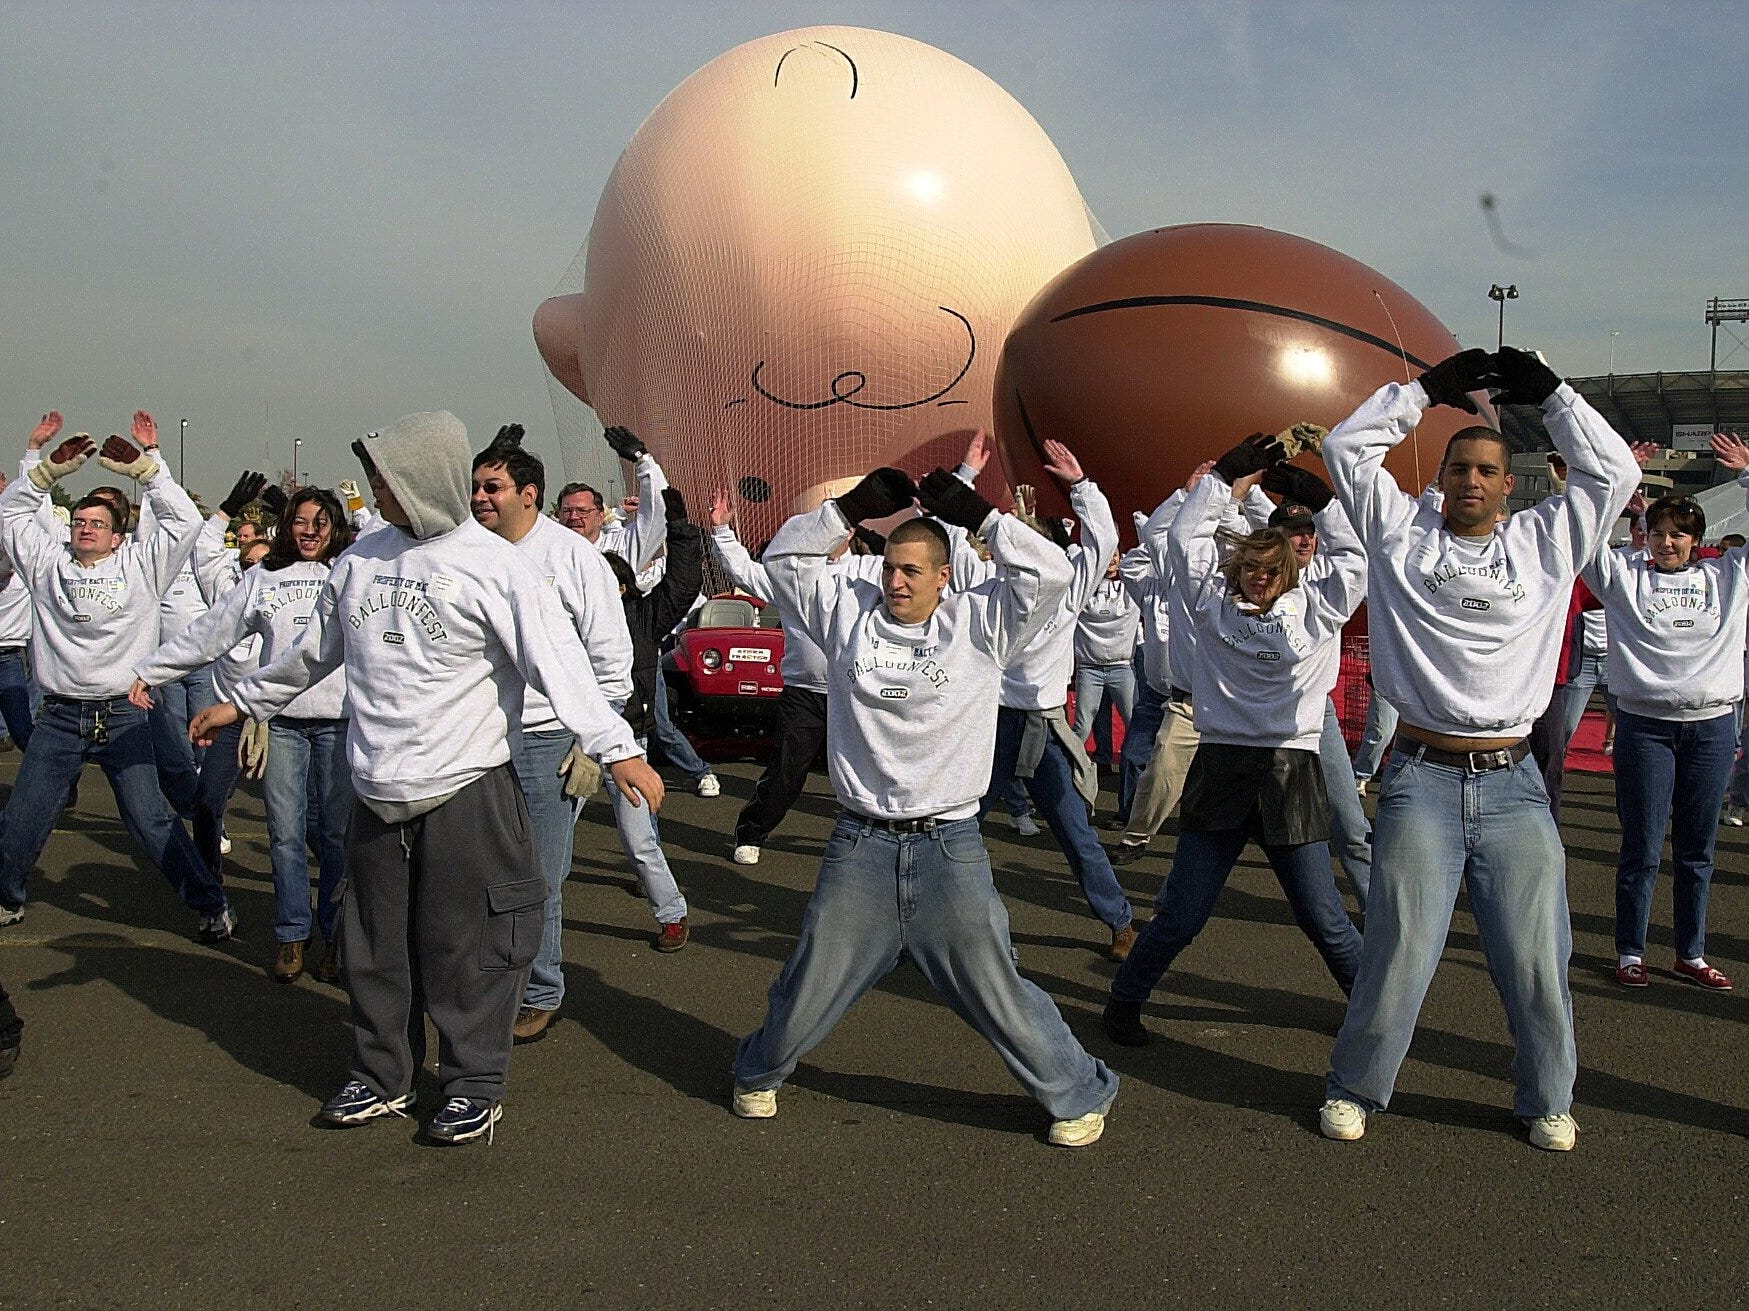 """-  -Balloon handlers warm up before taking the new """"Charlie Brown """" balloon for a test flight at The Meadowlands Sports Complex in East Rutherford, NJ on Saturday, November 9, 2002. The balloonfest is held every year to give a trial run to new balloons before the Macy's Thanksgiving Day parade.(Rohanna Mertens for The Journal News11/09/02)"""